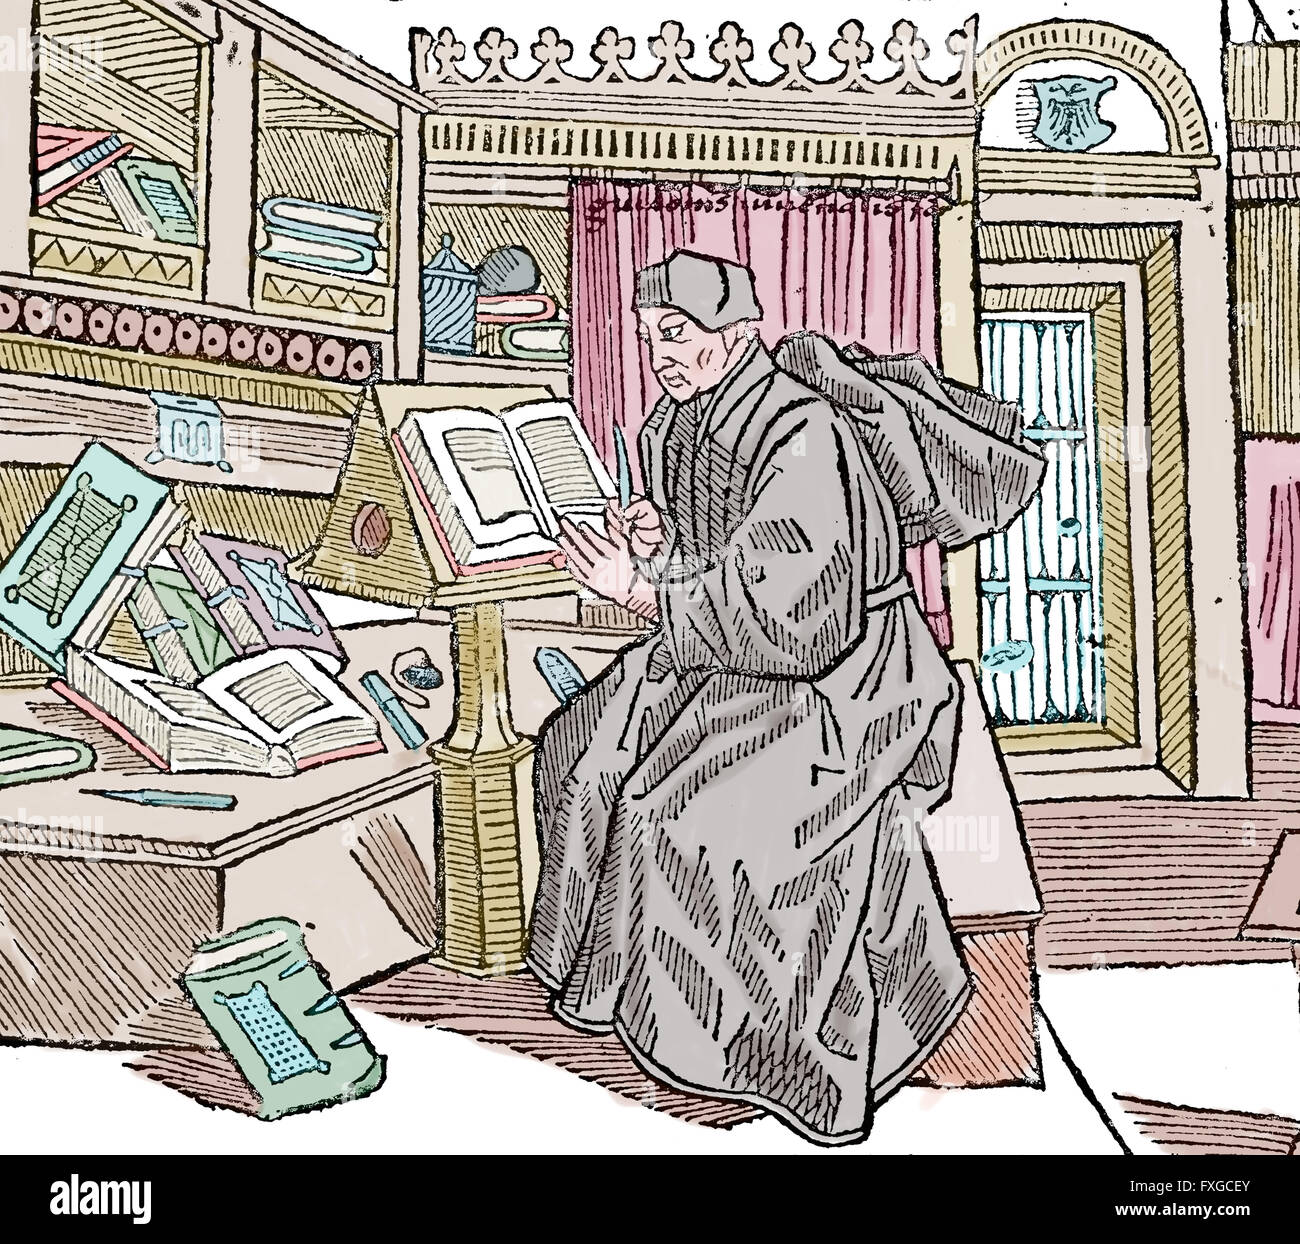 Middle Ages. Scriptorium monk at work. Engraving. Colored. - Stock Image